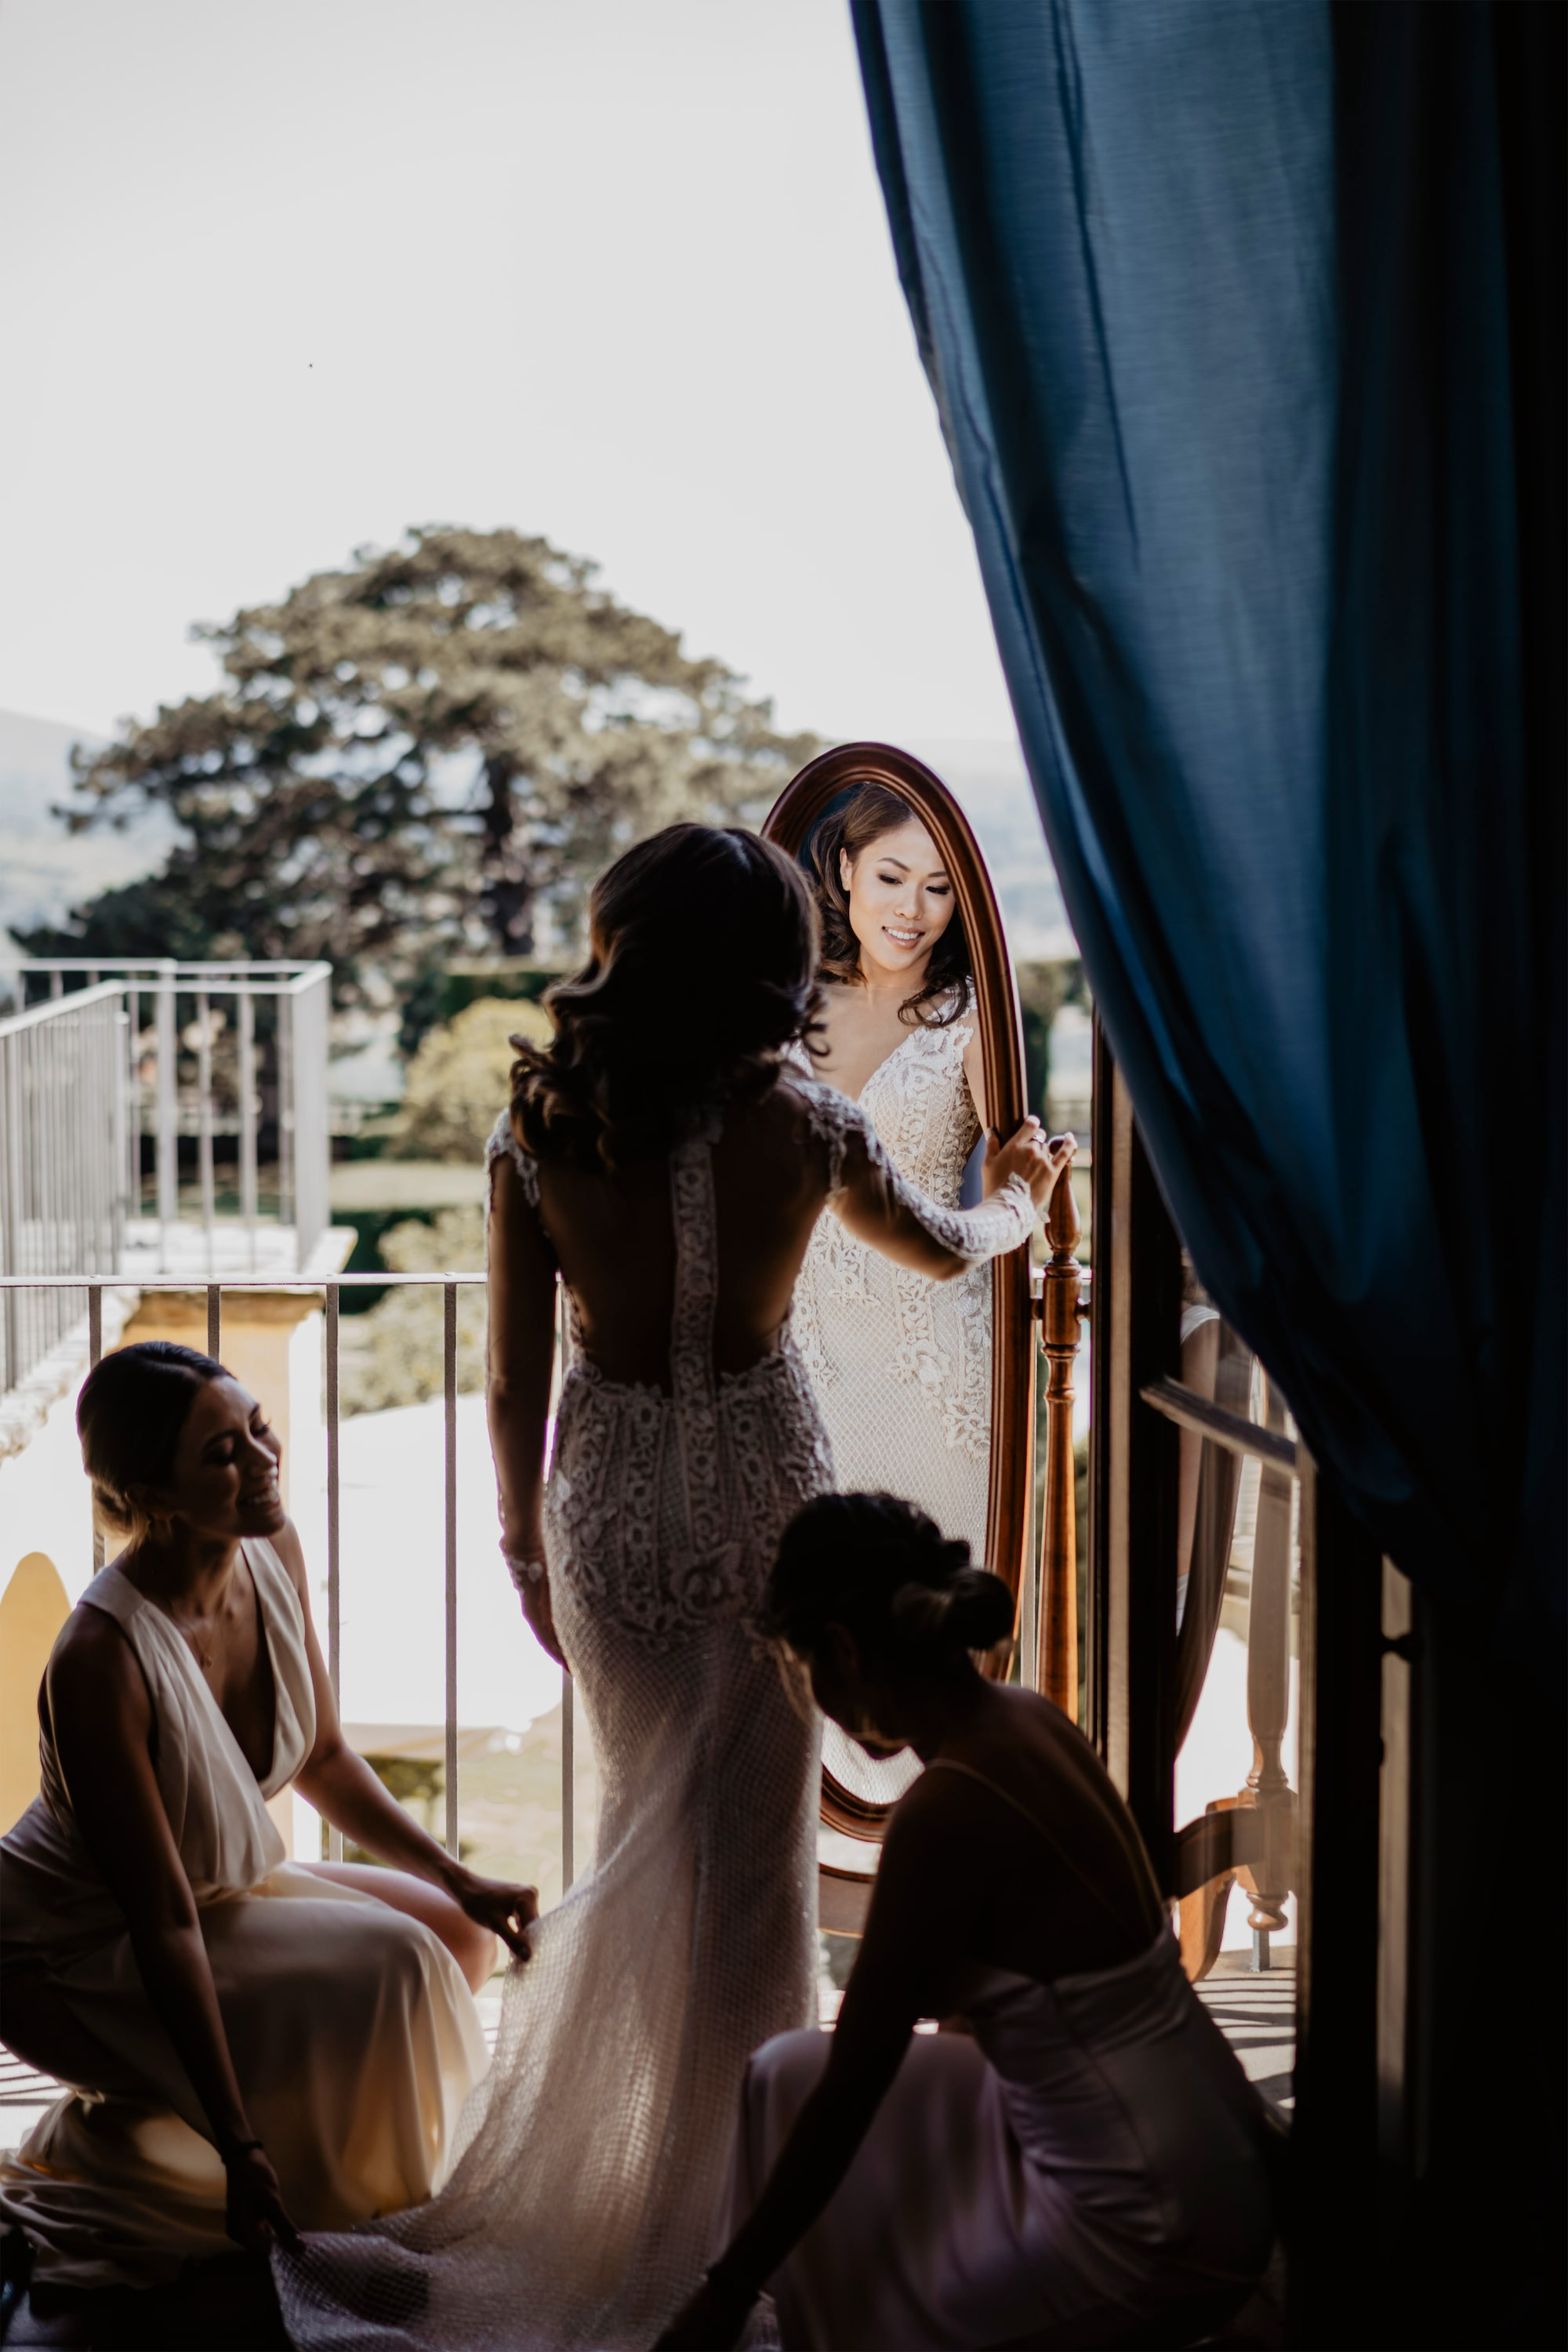 david bastianoni sony alpha 7M3 bride getting ready in front of a mirror as her two bridesmaids look on